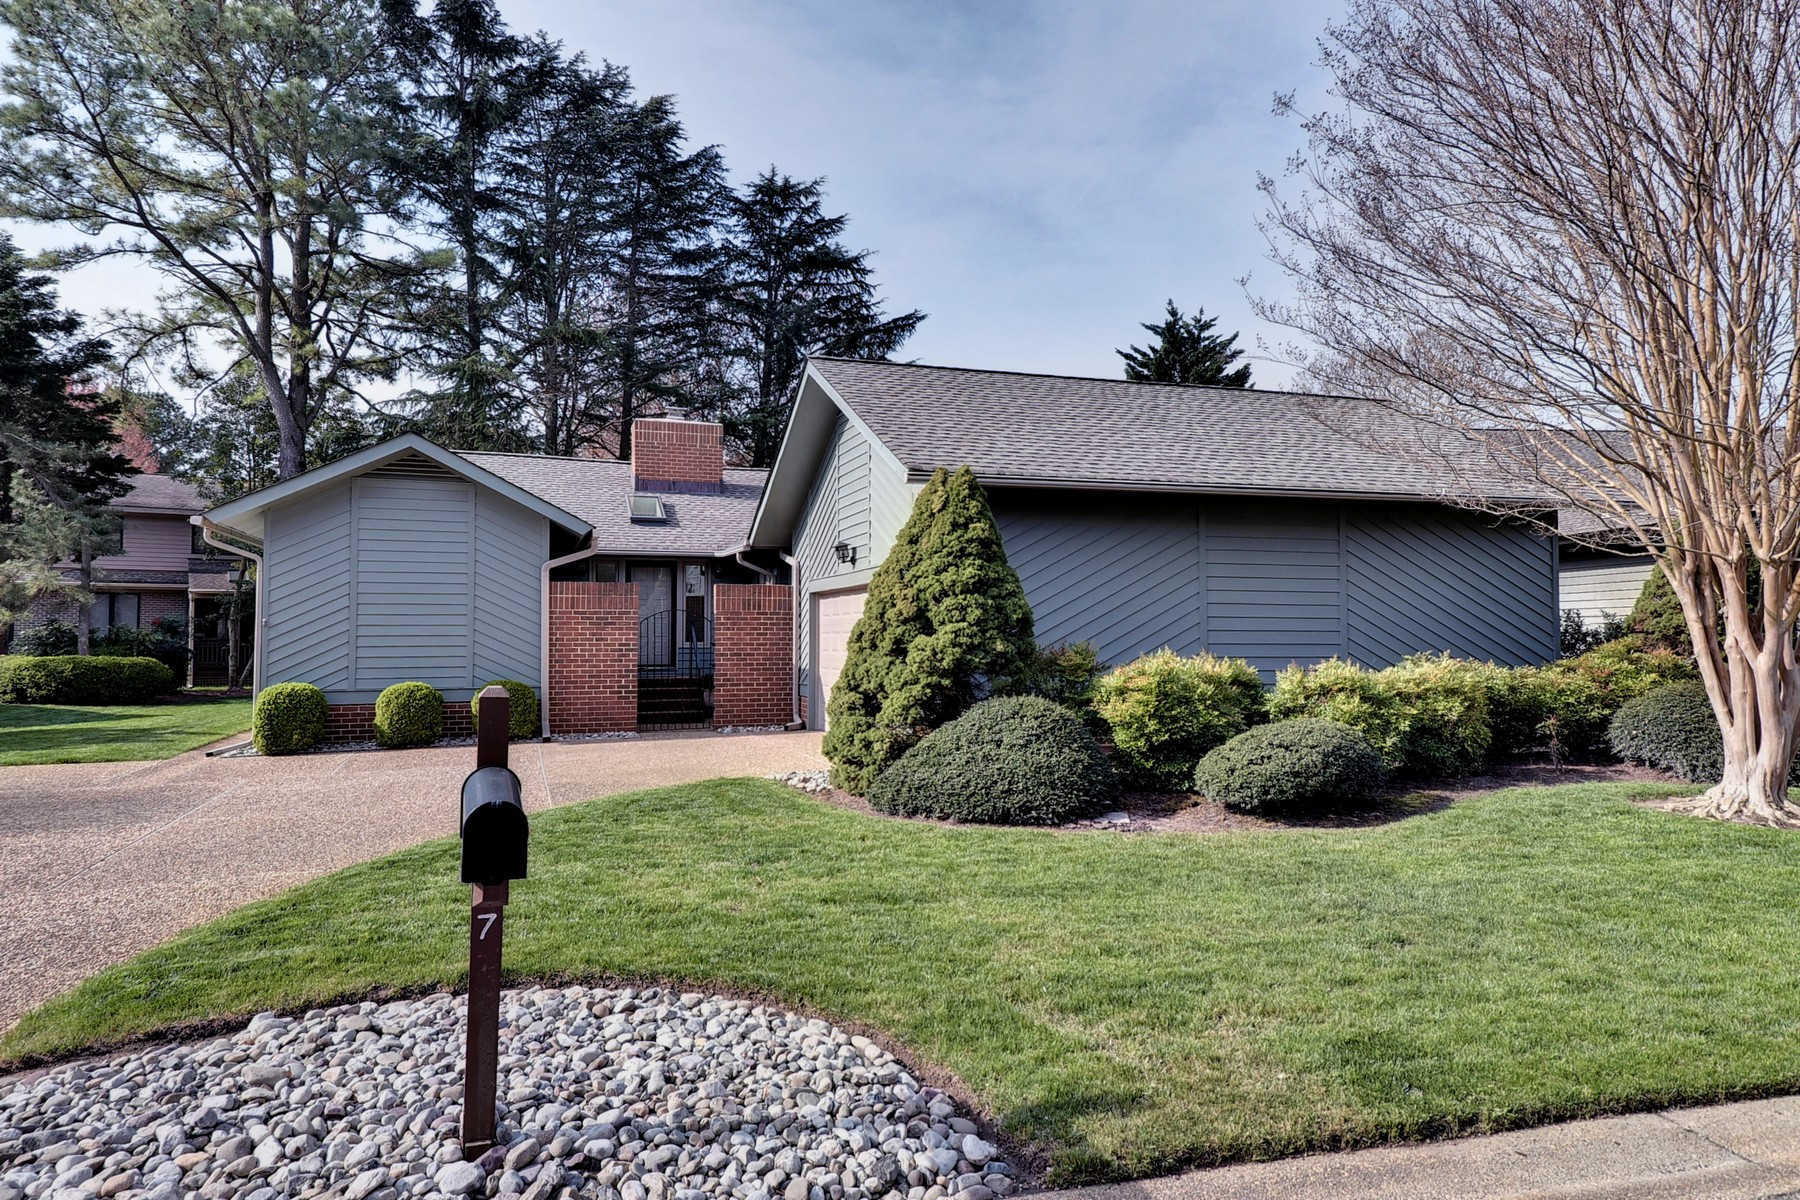 Single Family Home for Sale at 7 Yeardleys Grant, Kingsmill, Williamsburg 7 Yeardleys Grant Williamsburg, Virginia 23185 United States